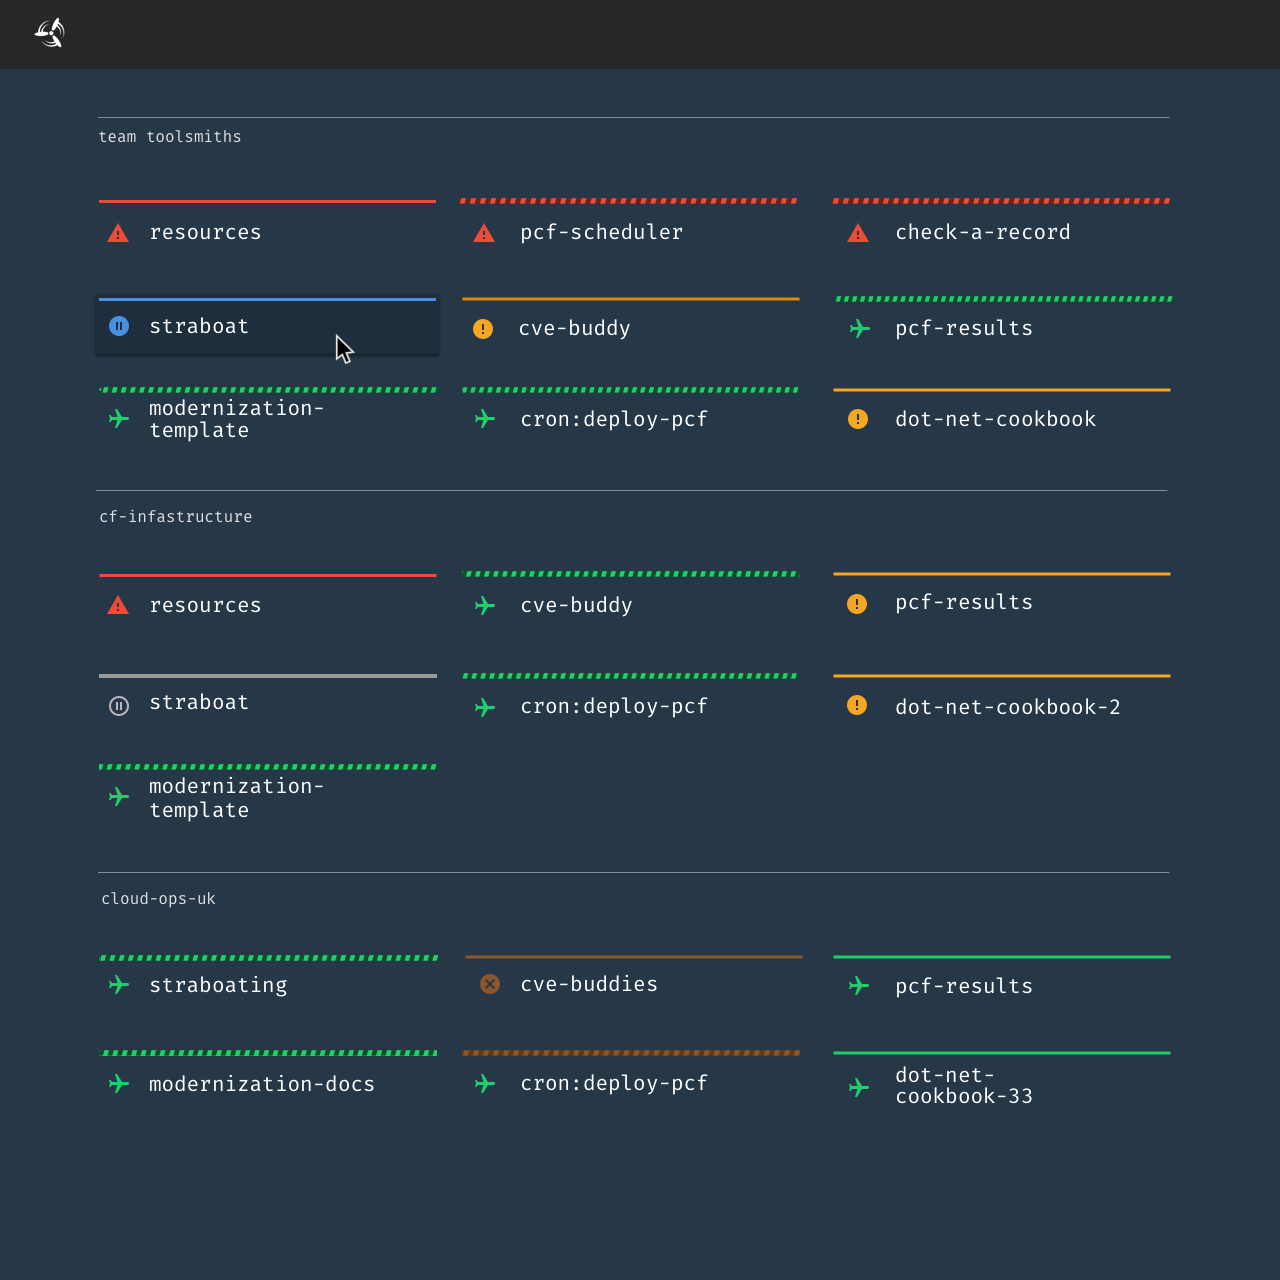 dashboard_hover_state_p1_1442